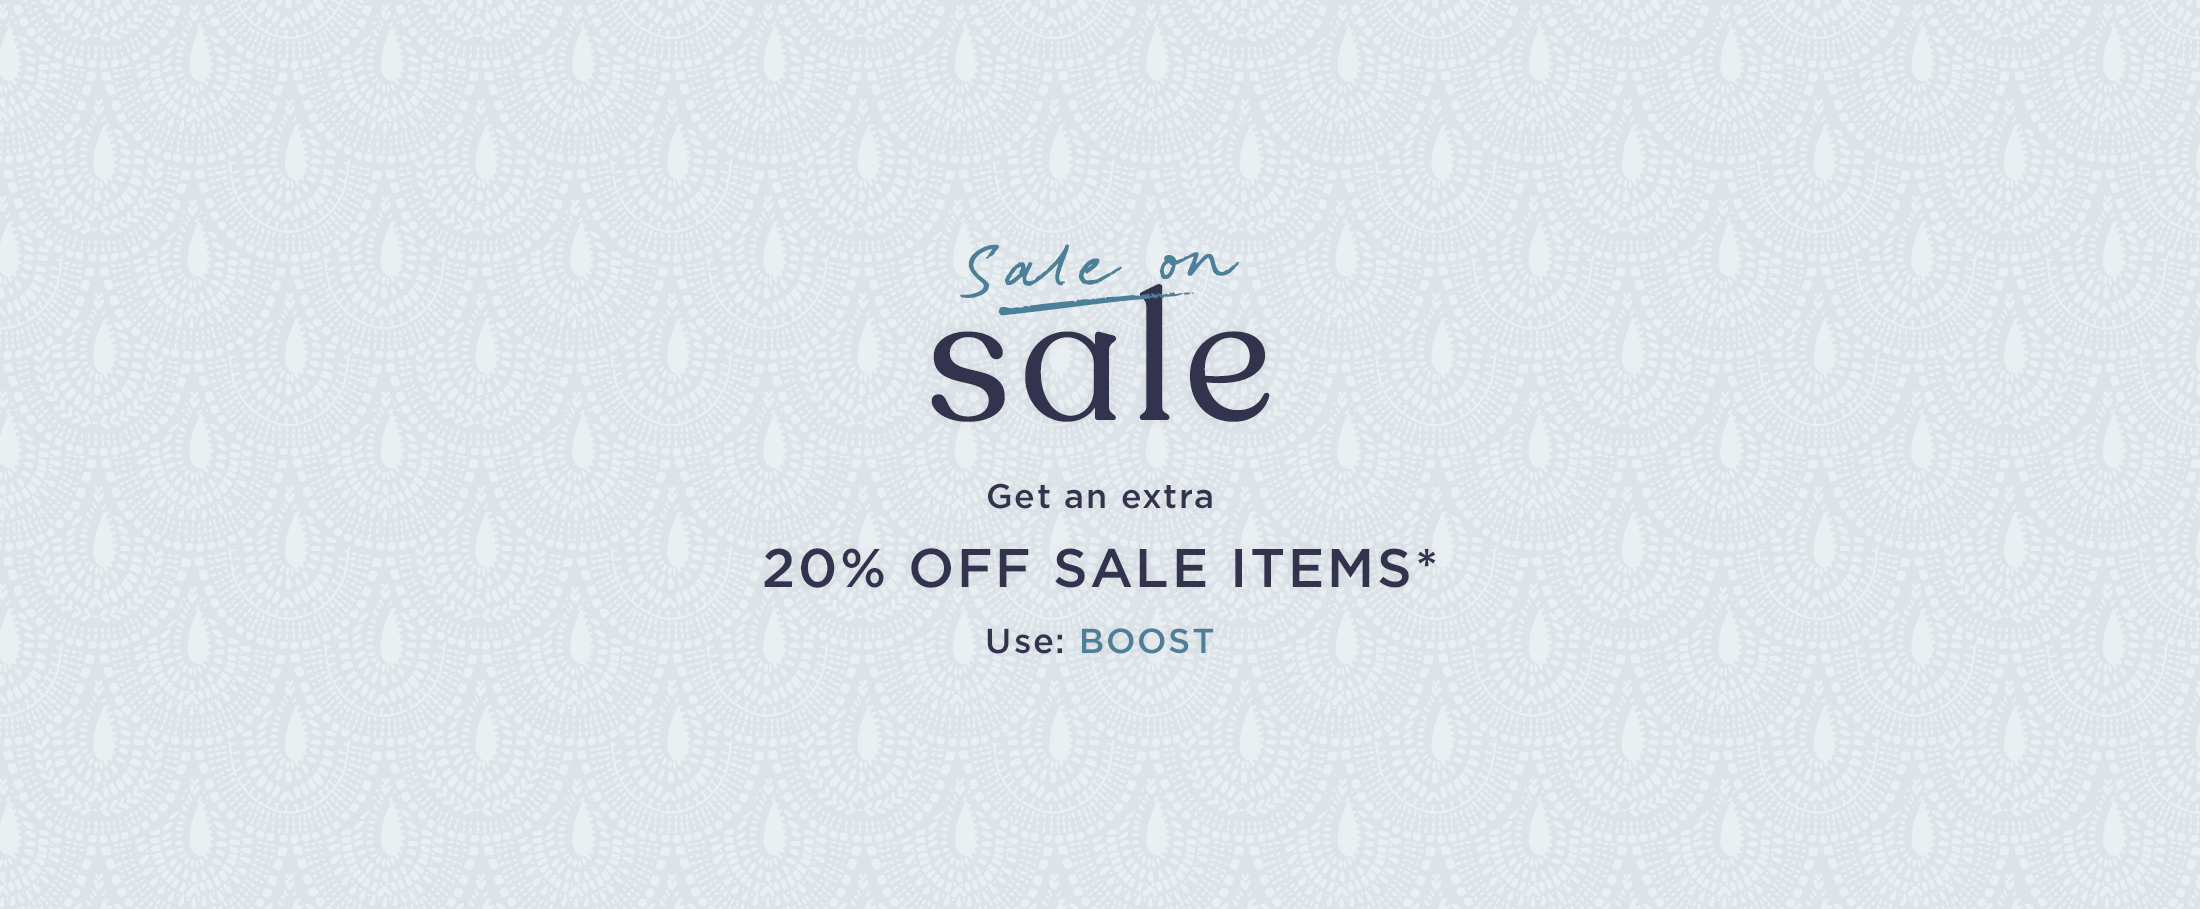 Get an extra 20% off sale items with promo code BOOST